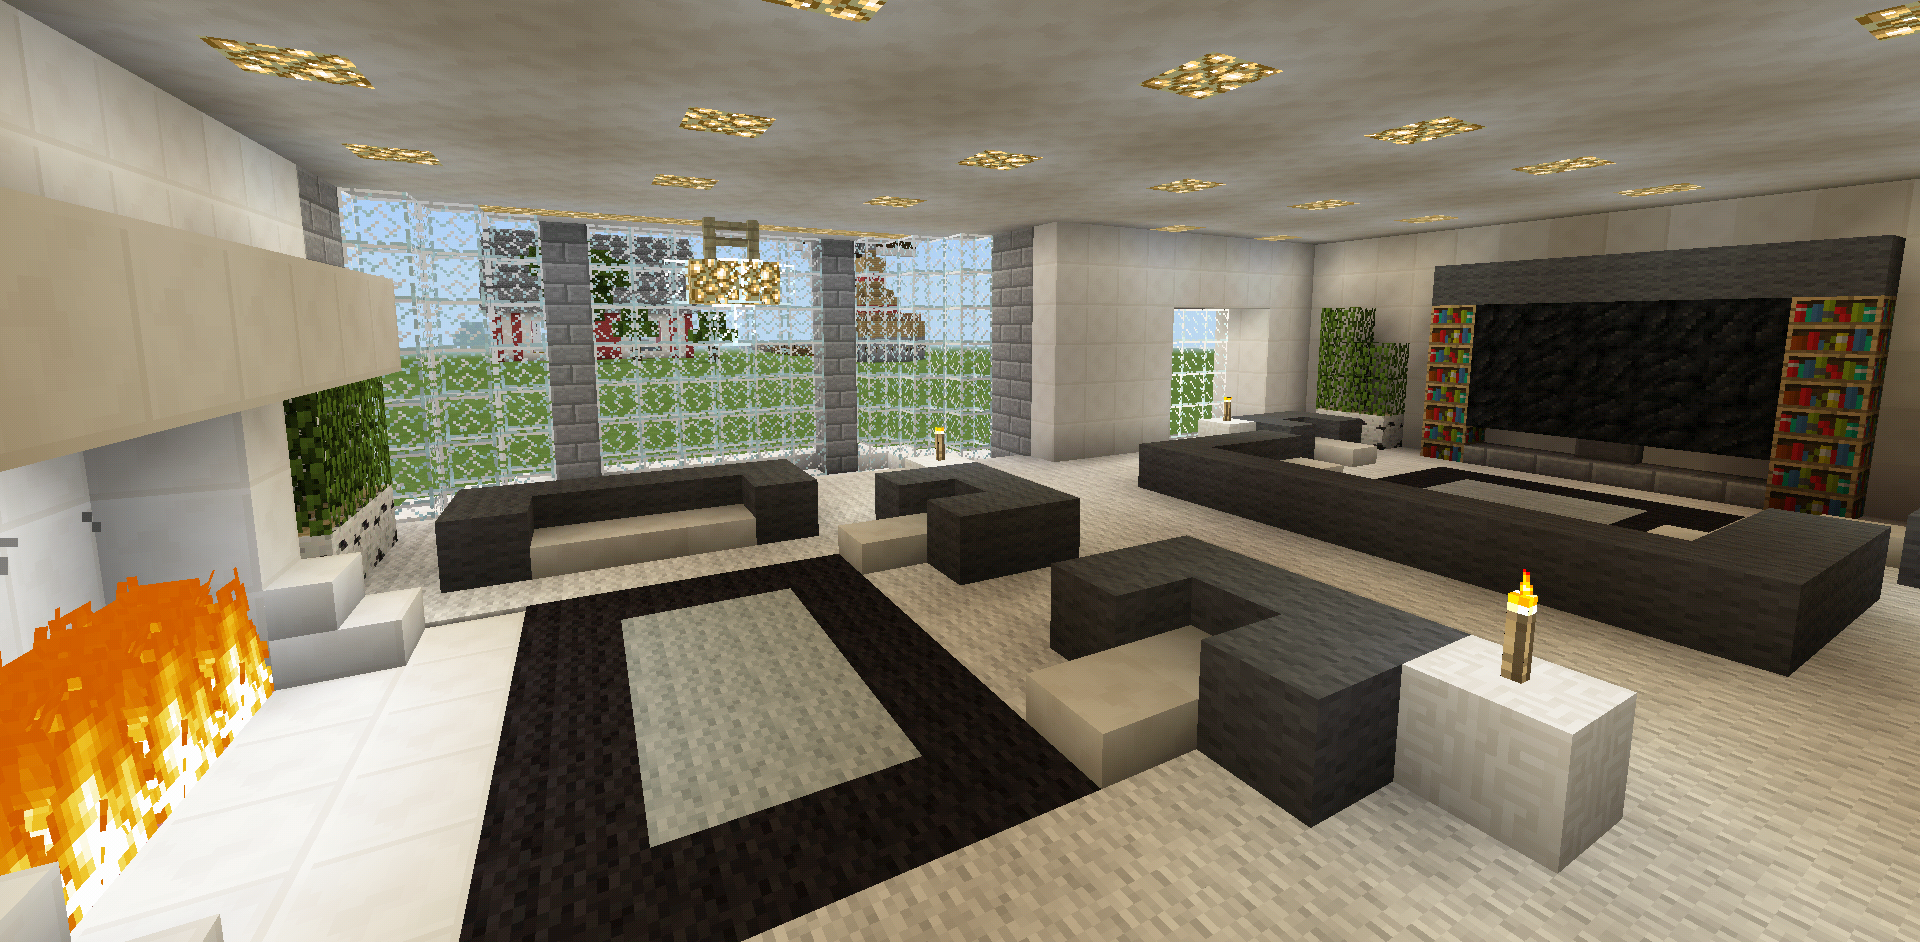 minecraft family living room and fireplace couch chair tv On a living room in minecraft